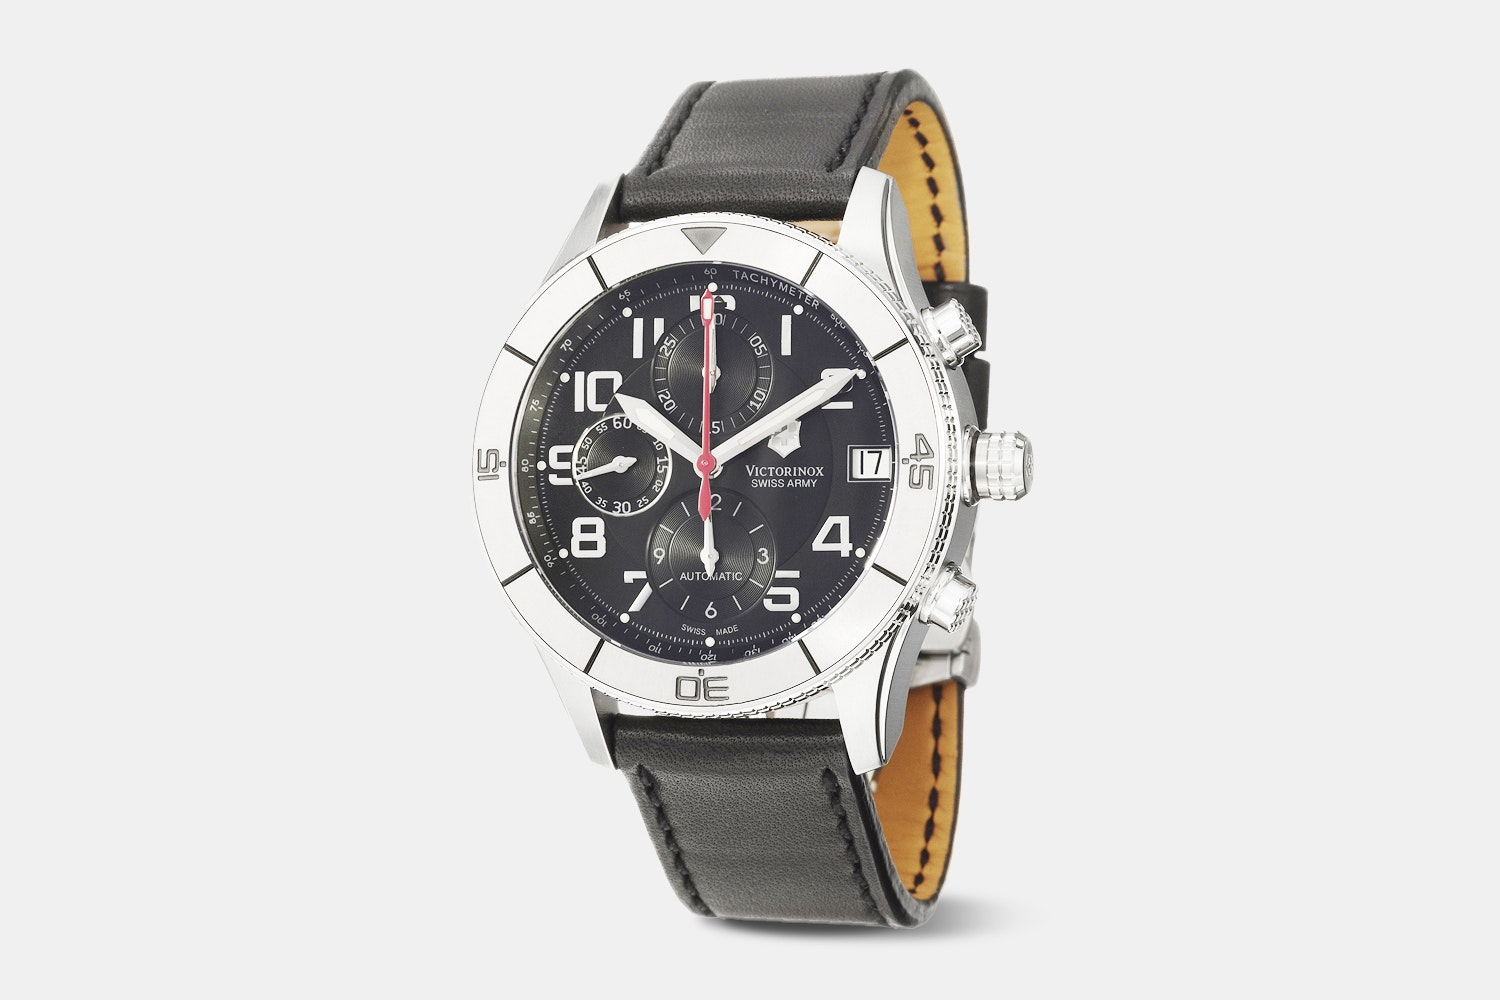 Victorinox Ambassador Automatic Chronograph Watch